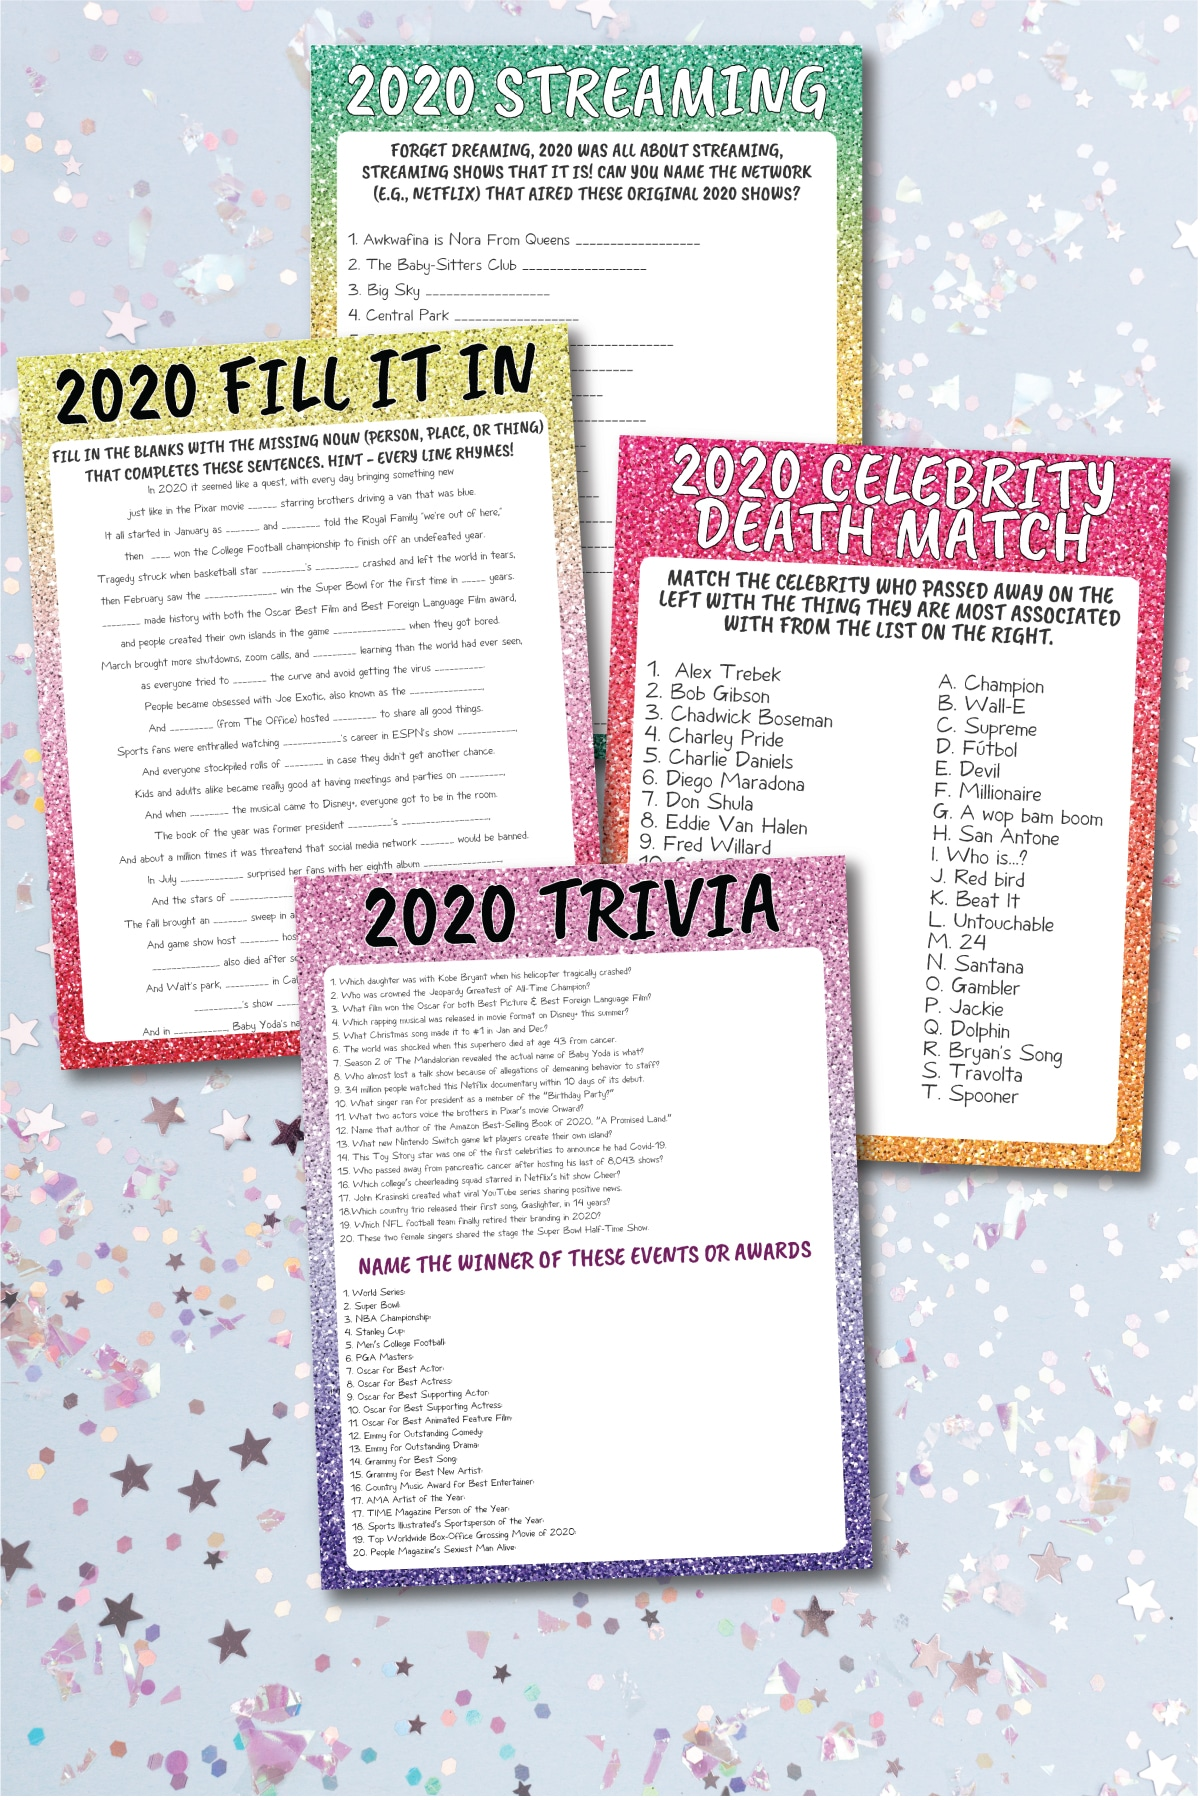 Four 2020 New Year's Eve trivia games